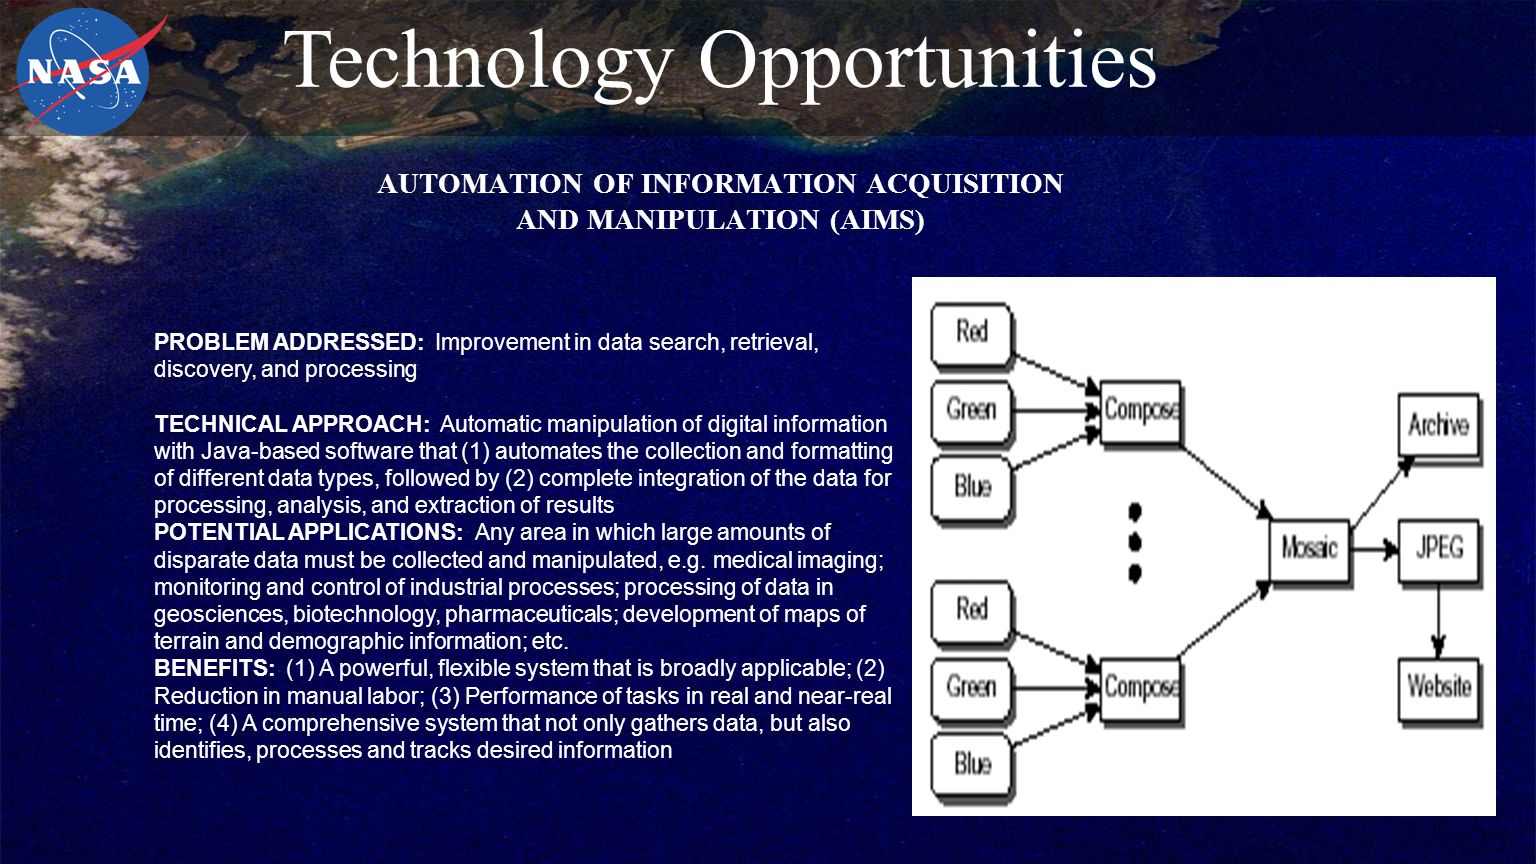 AUTOMATION OF INFORMATION ACQUISITION AND MANIPULATION (AIMS) PROBLEM ADDRESSED: Improvement in data search, retrieval, discovery, and processing TECHNICAL APPROACH: Automatic manipulation of digital information with Java-based software that (1) automates the collection and formatting of different data types, followed by (2) complete integration of the data for processing, analysis, and extraction of results POTENTIAL APPLICATIONS: Any area in which large amounts of disparate data must be collected and manipulated, e.g.